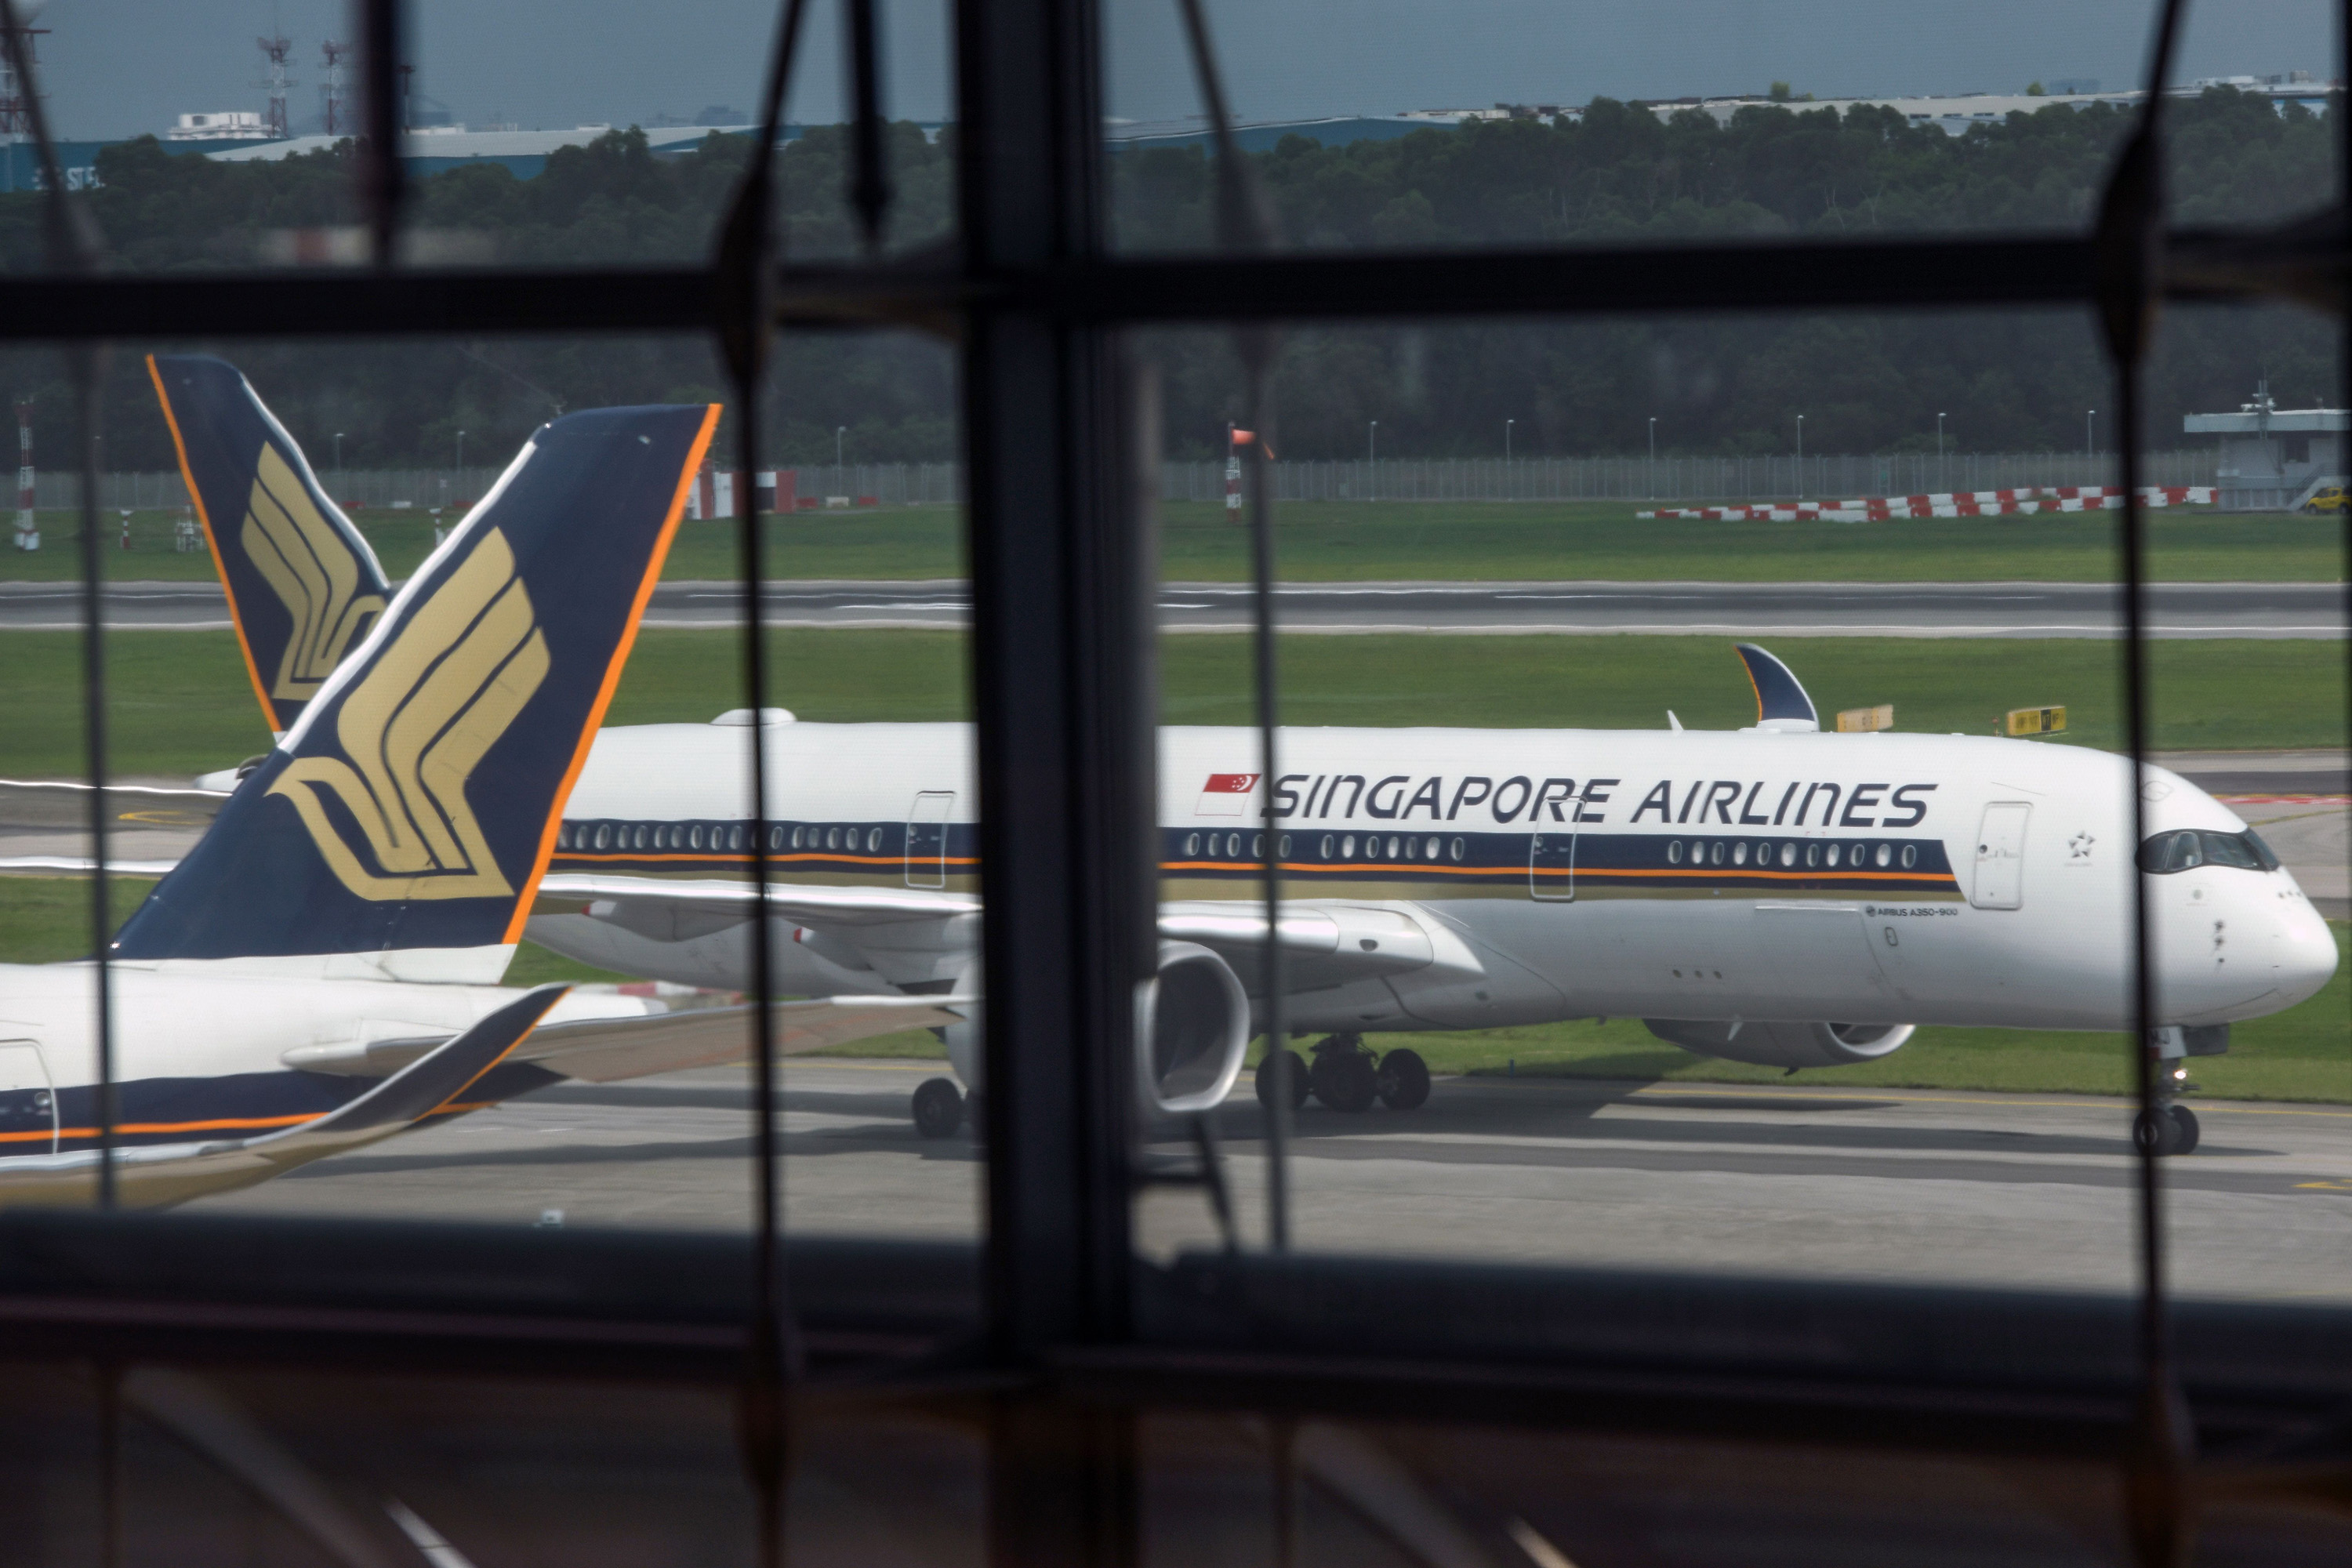 A Singapore Airlines passenger jet taxis along the tarmac as it arrives at Changi International Airport terminal in Singapore on June 8.